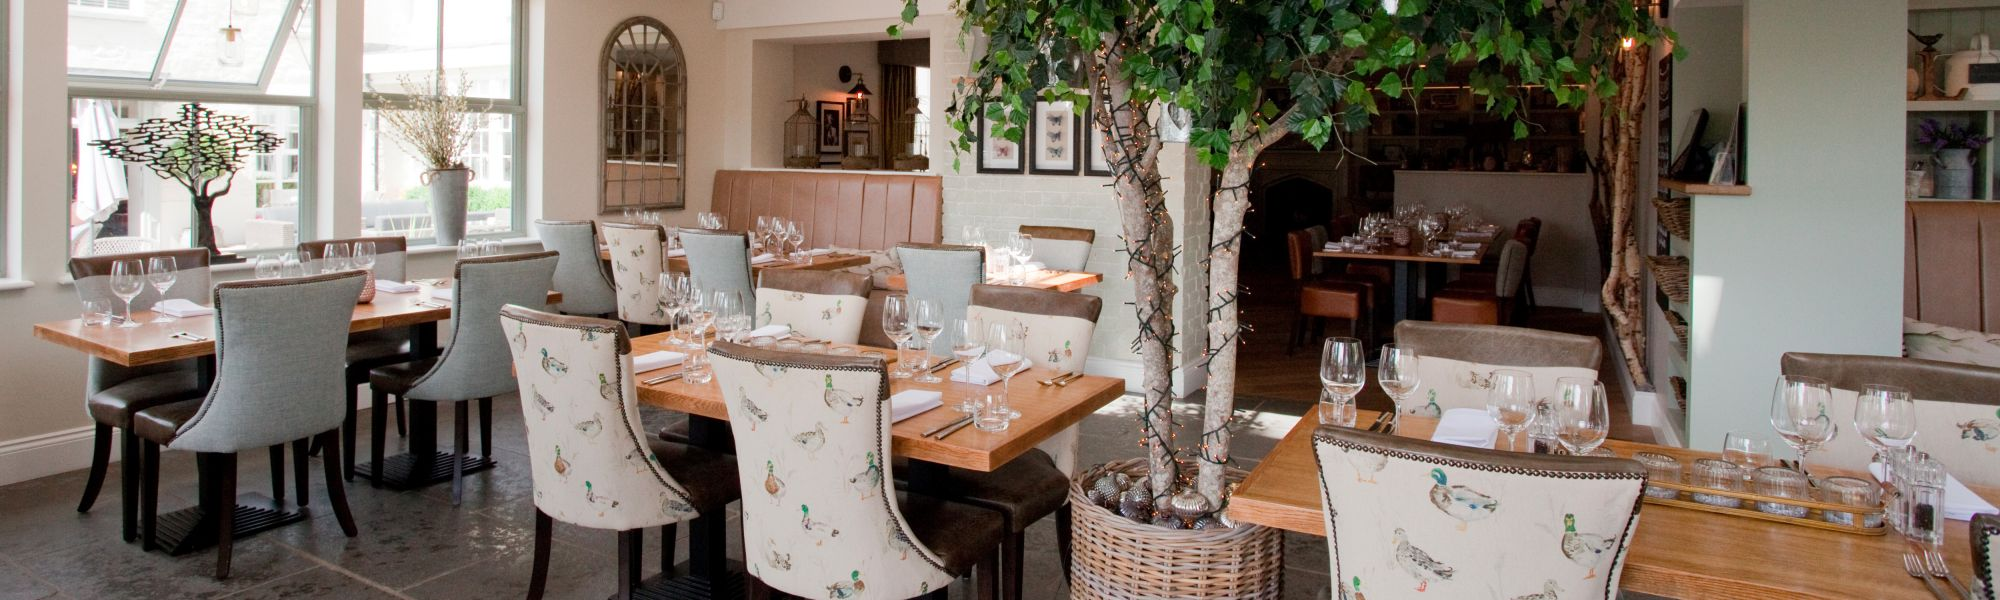 Restaurants, dining and eateries in Hay-on-Wye